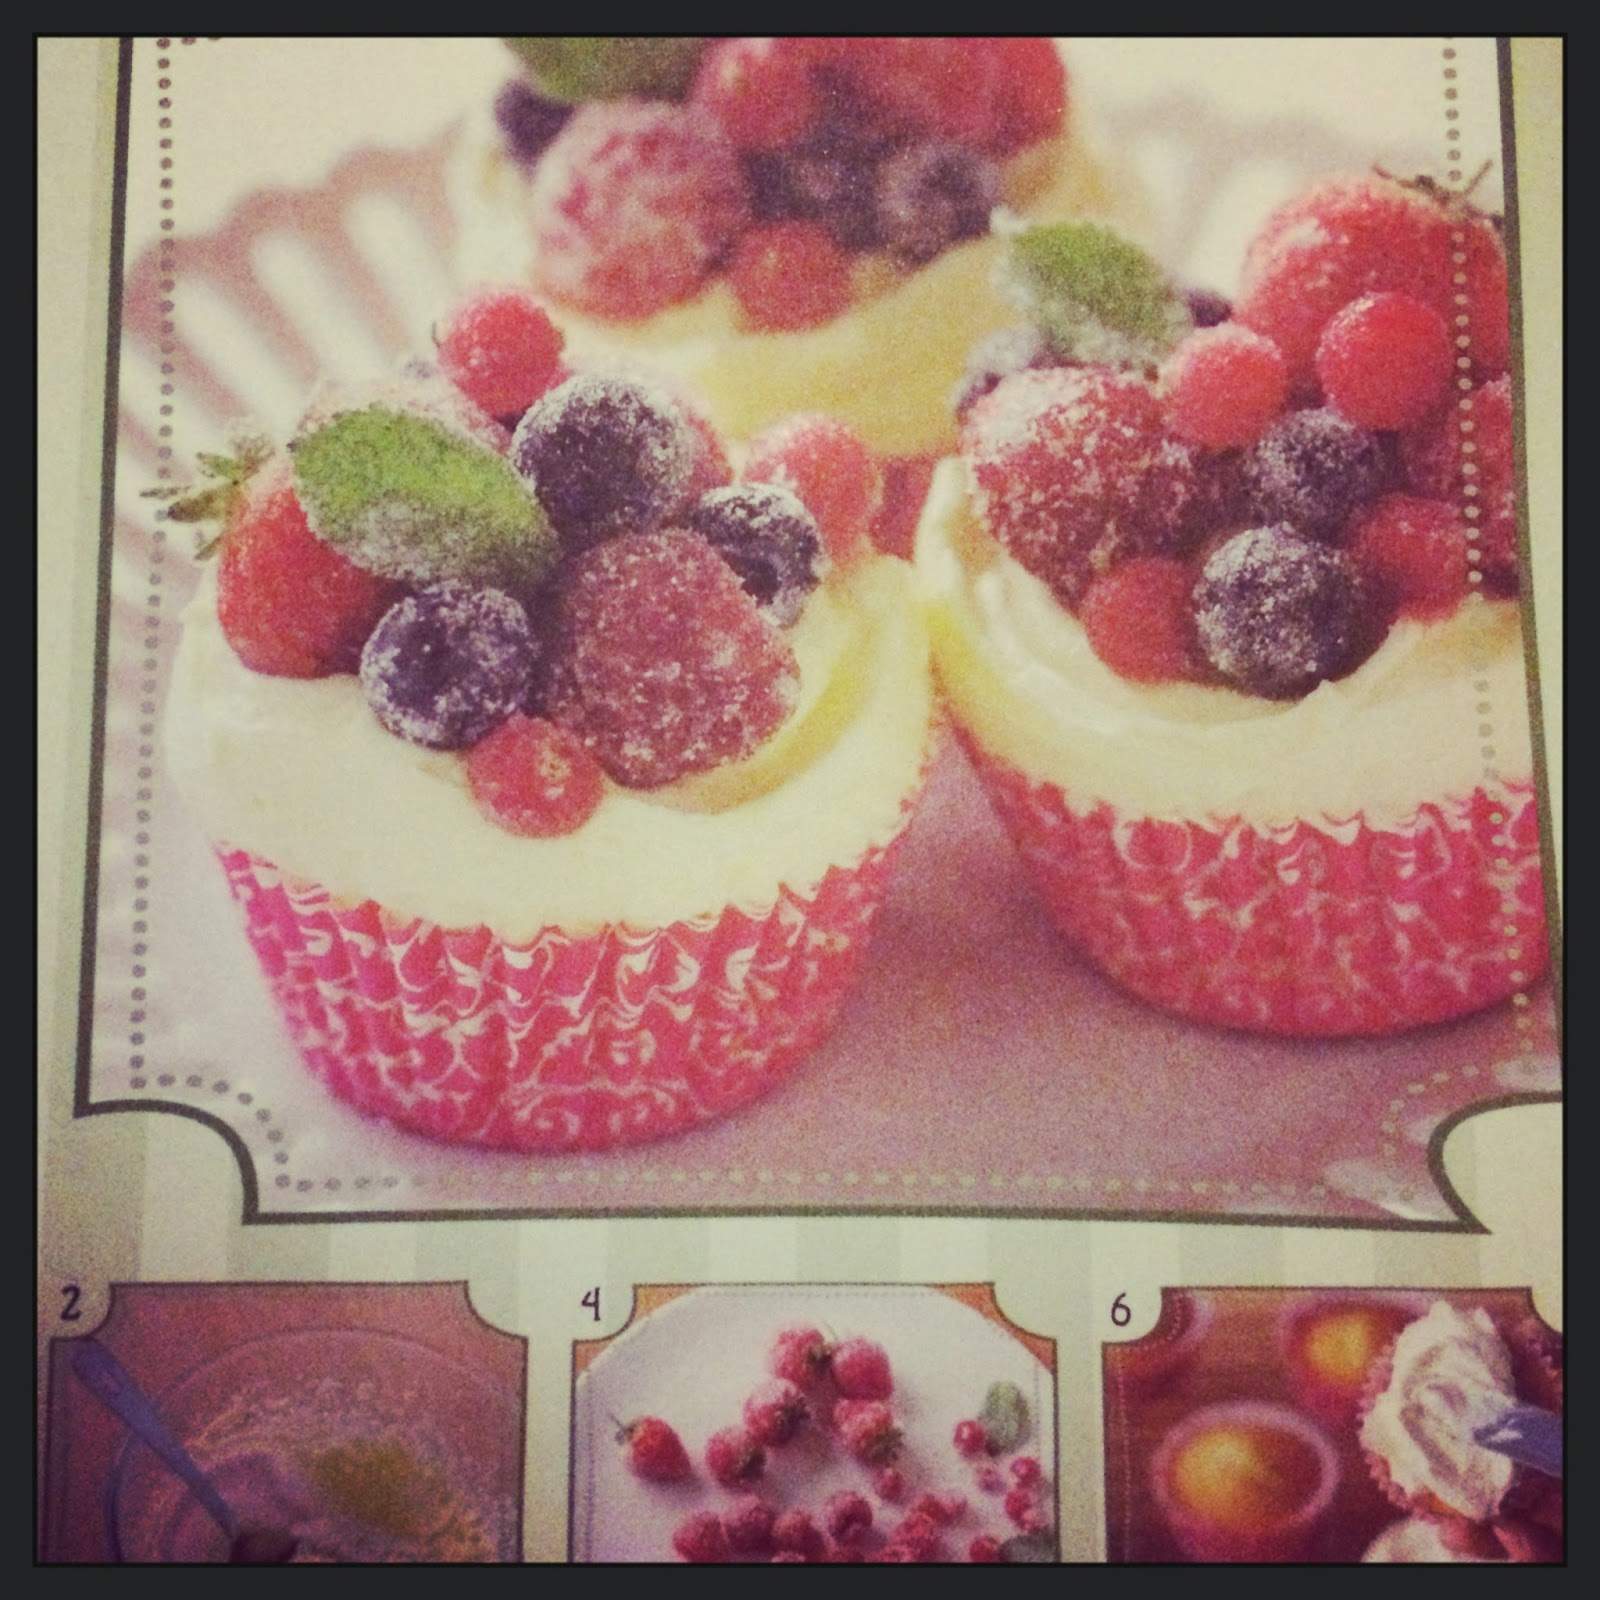 frosted berry cupcakes